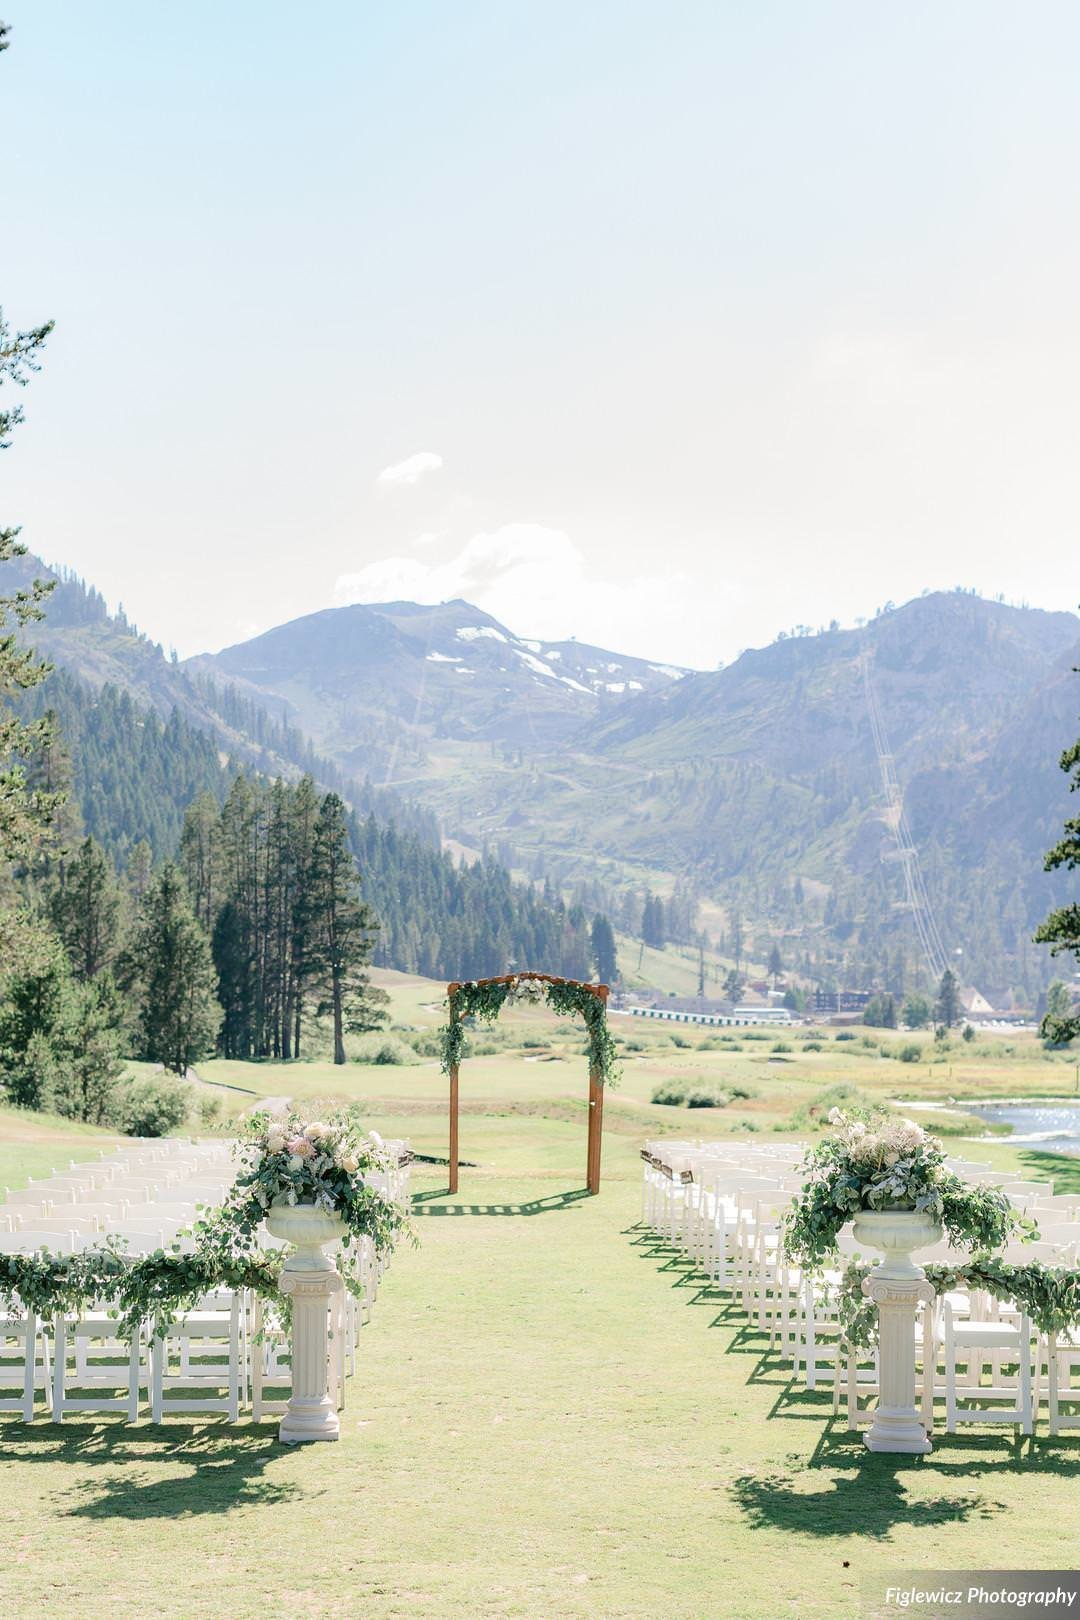 Garden_Tinsley_FiglewiczPhotography_LakeTahoeWeddingSquawValleyCreekTaylorBrendan00083_big